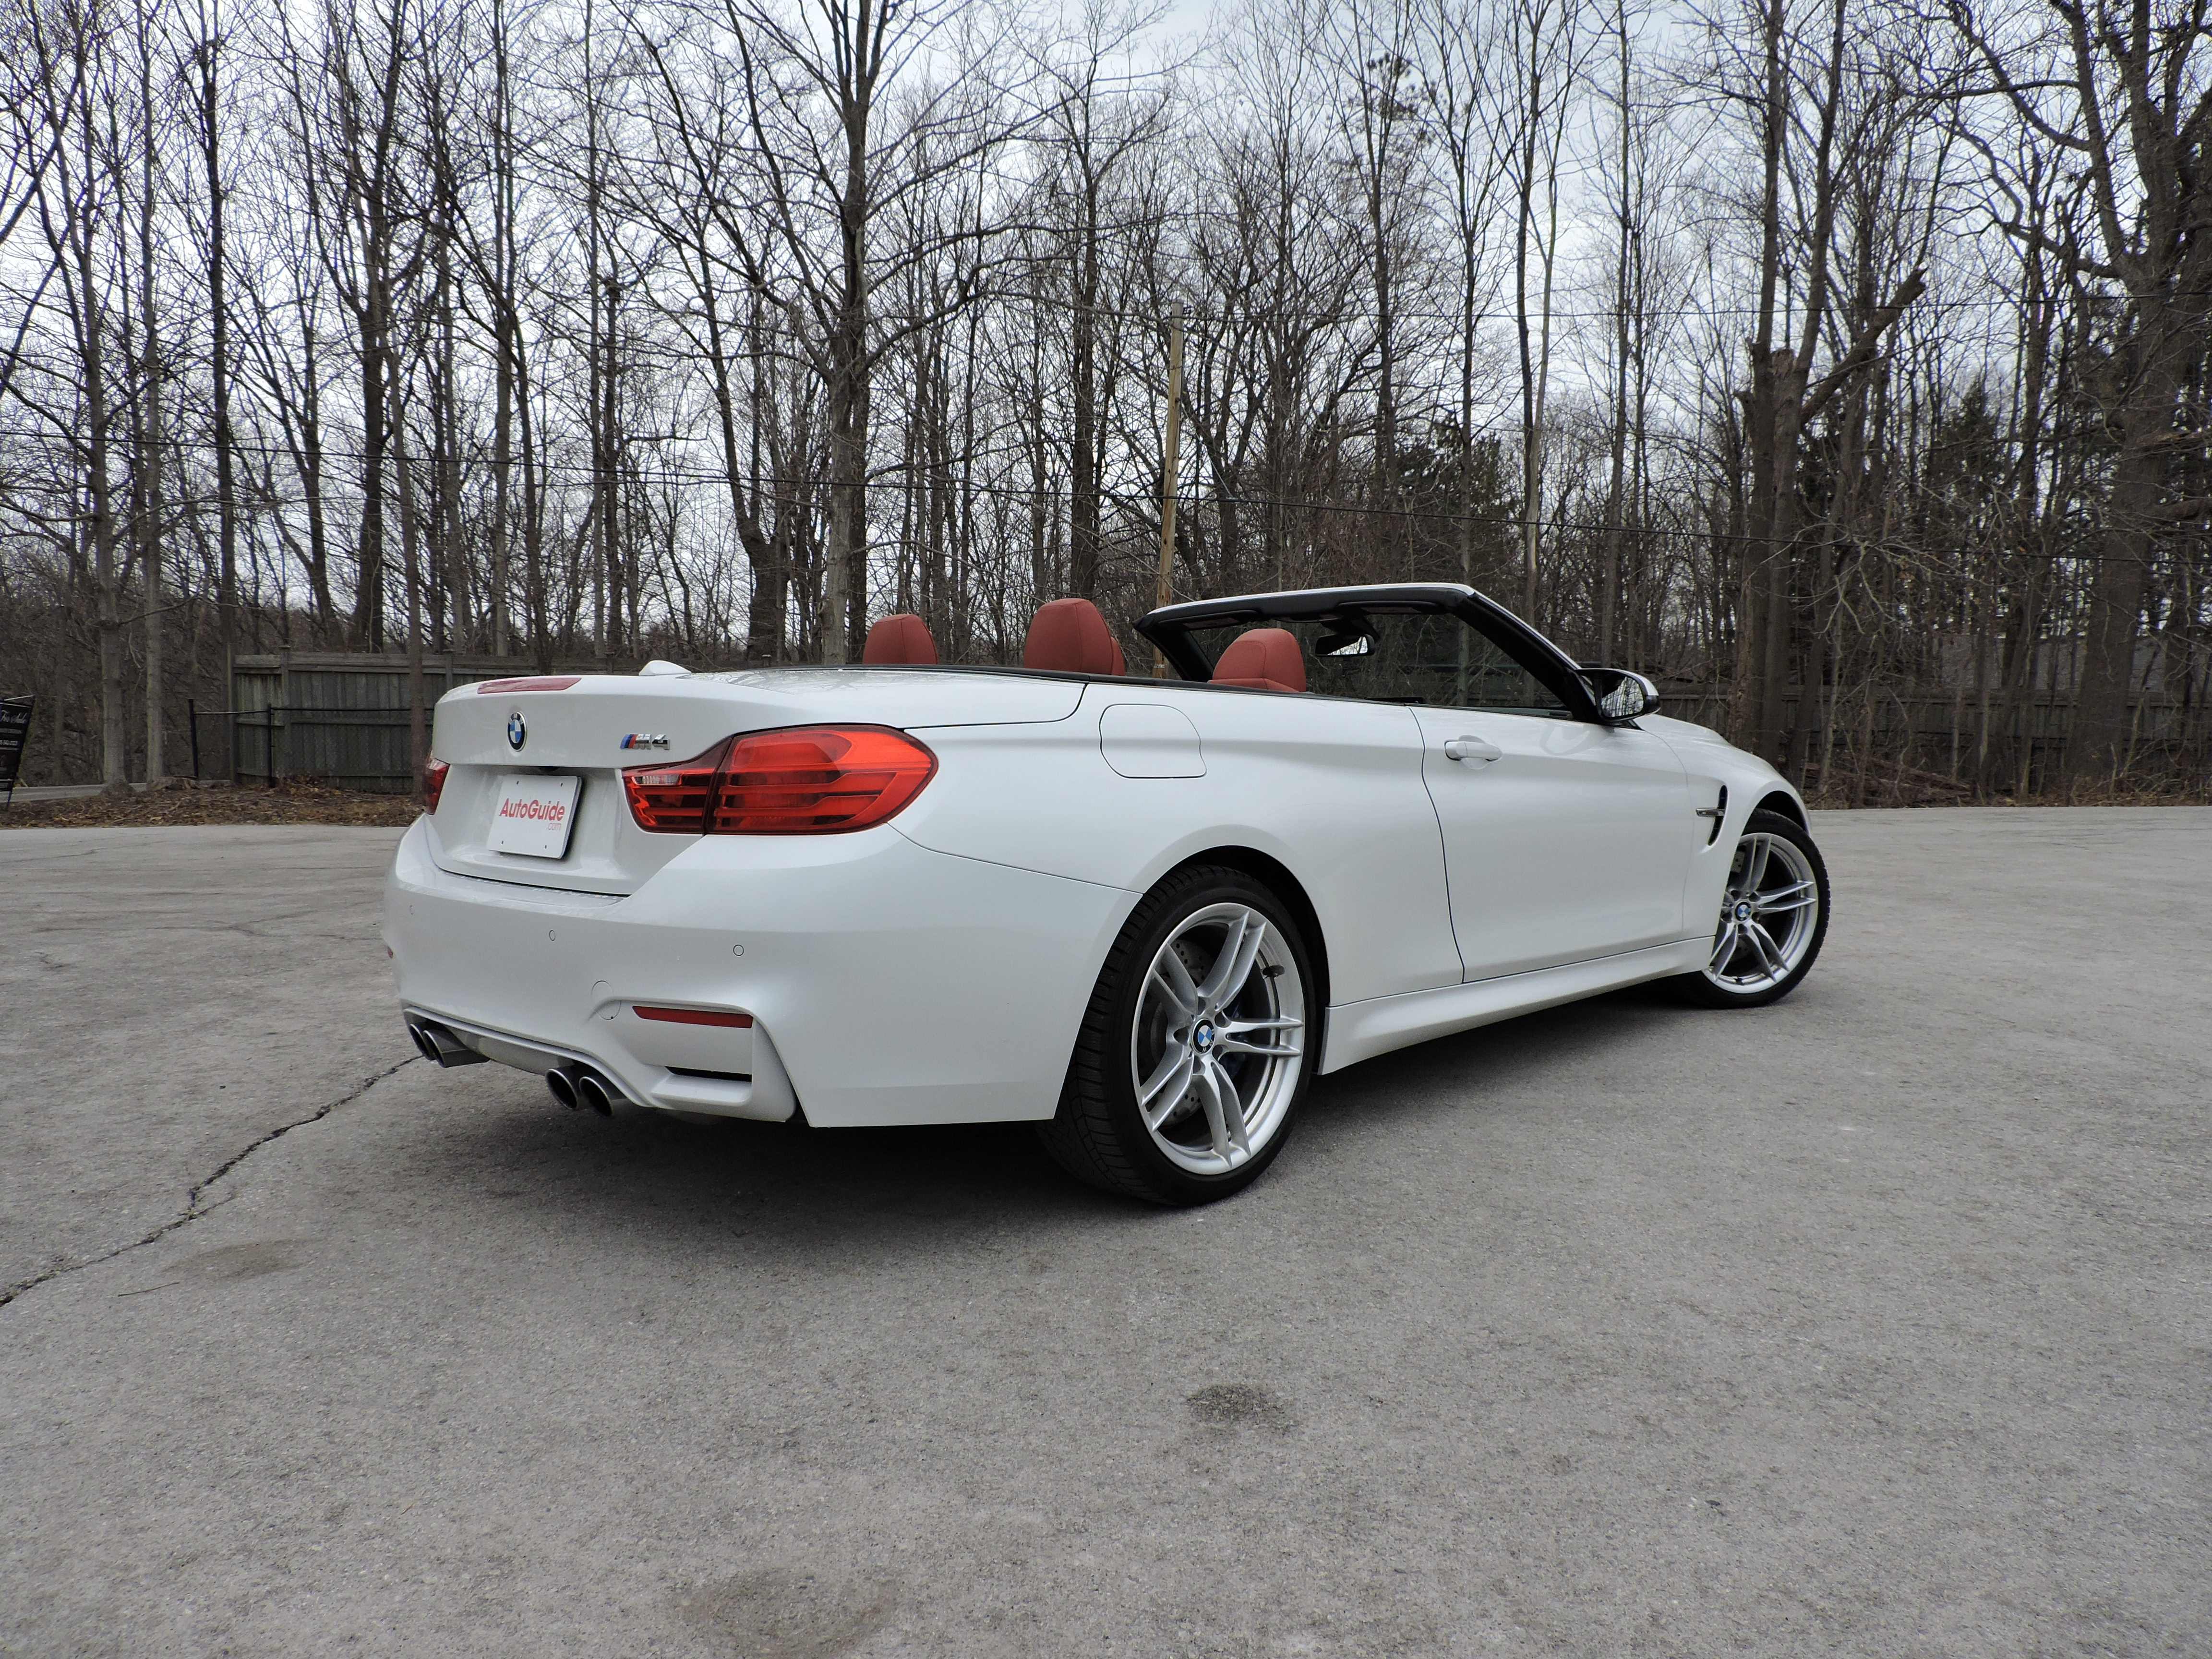 series factory for airbag issues convertible bmwcoop bmw recall